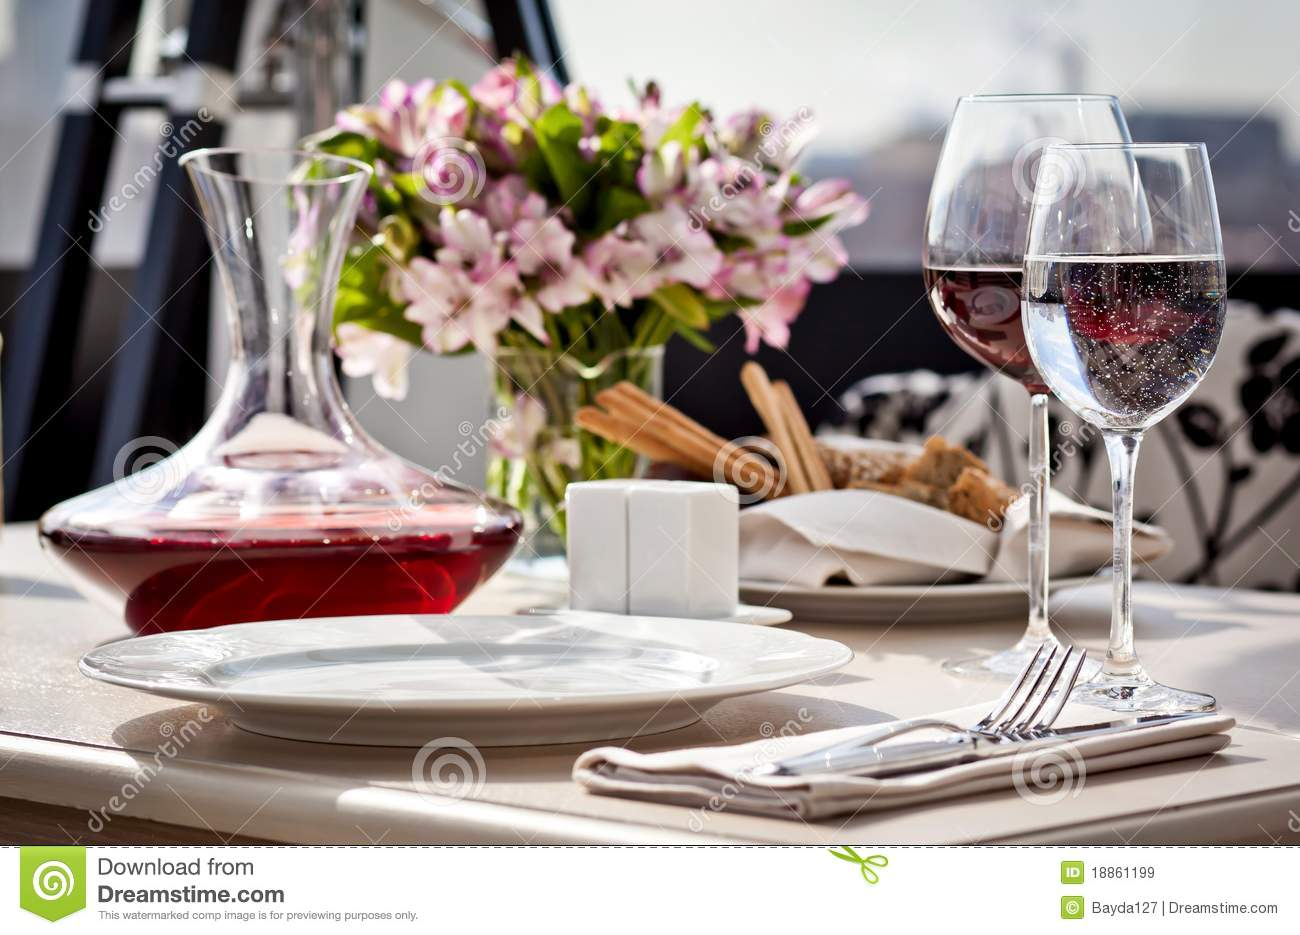 Fine Restaurant Dinner Table Place Setting Royalty Free  : fine restaurant dinner table place setting 18861199 from www.dreamstime.com size 1300 x 935 jpeg 125kB